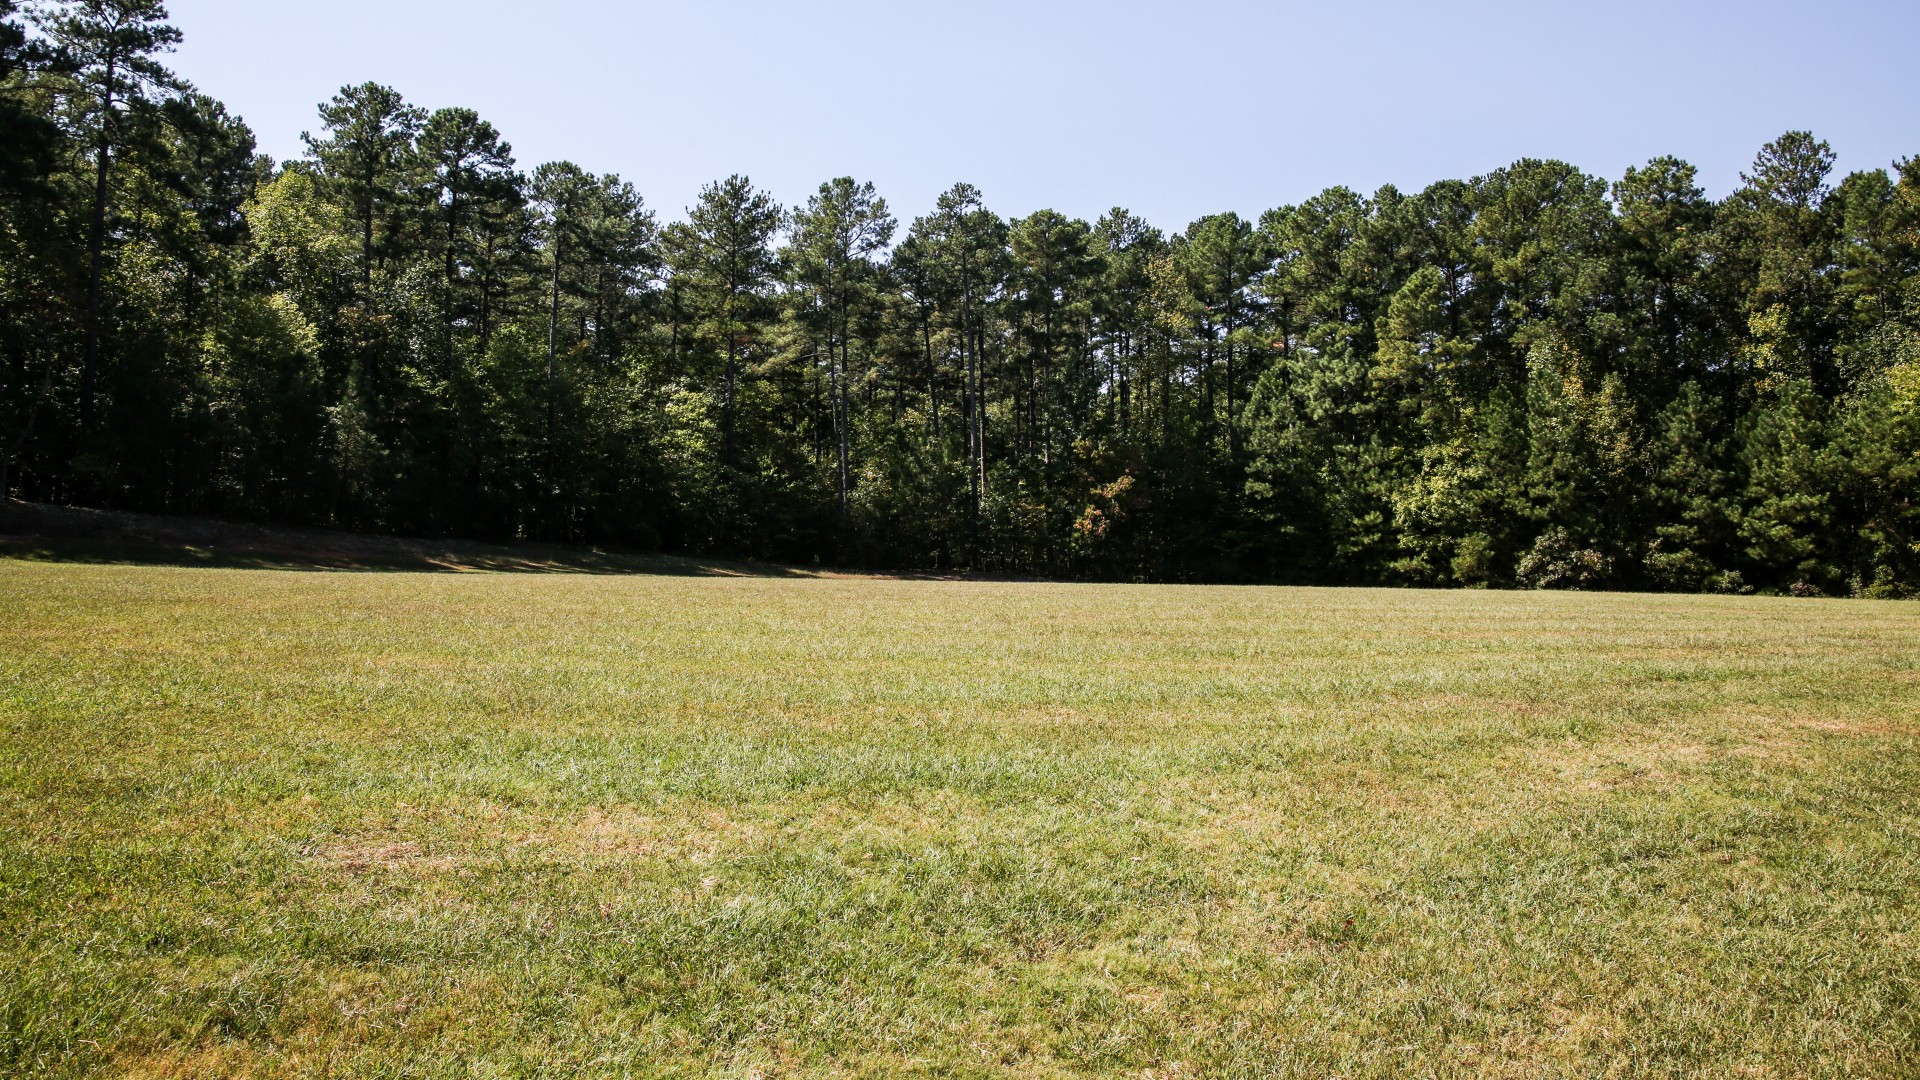 A large open field available for multipurpose use